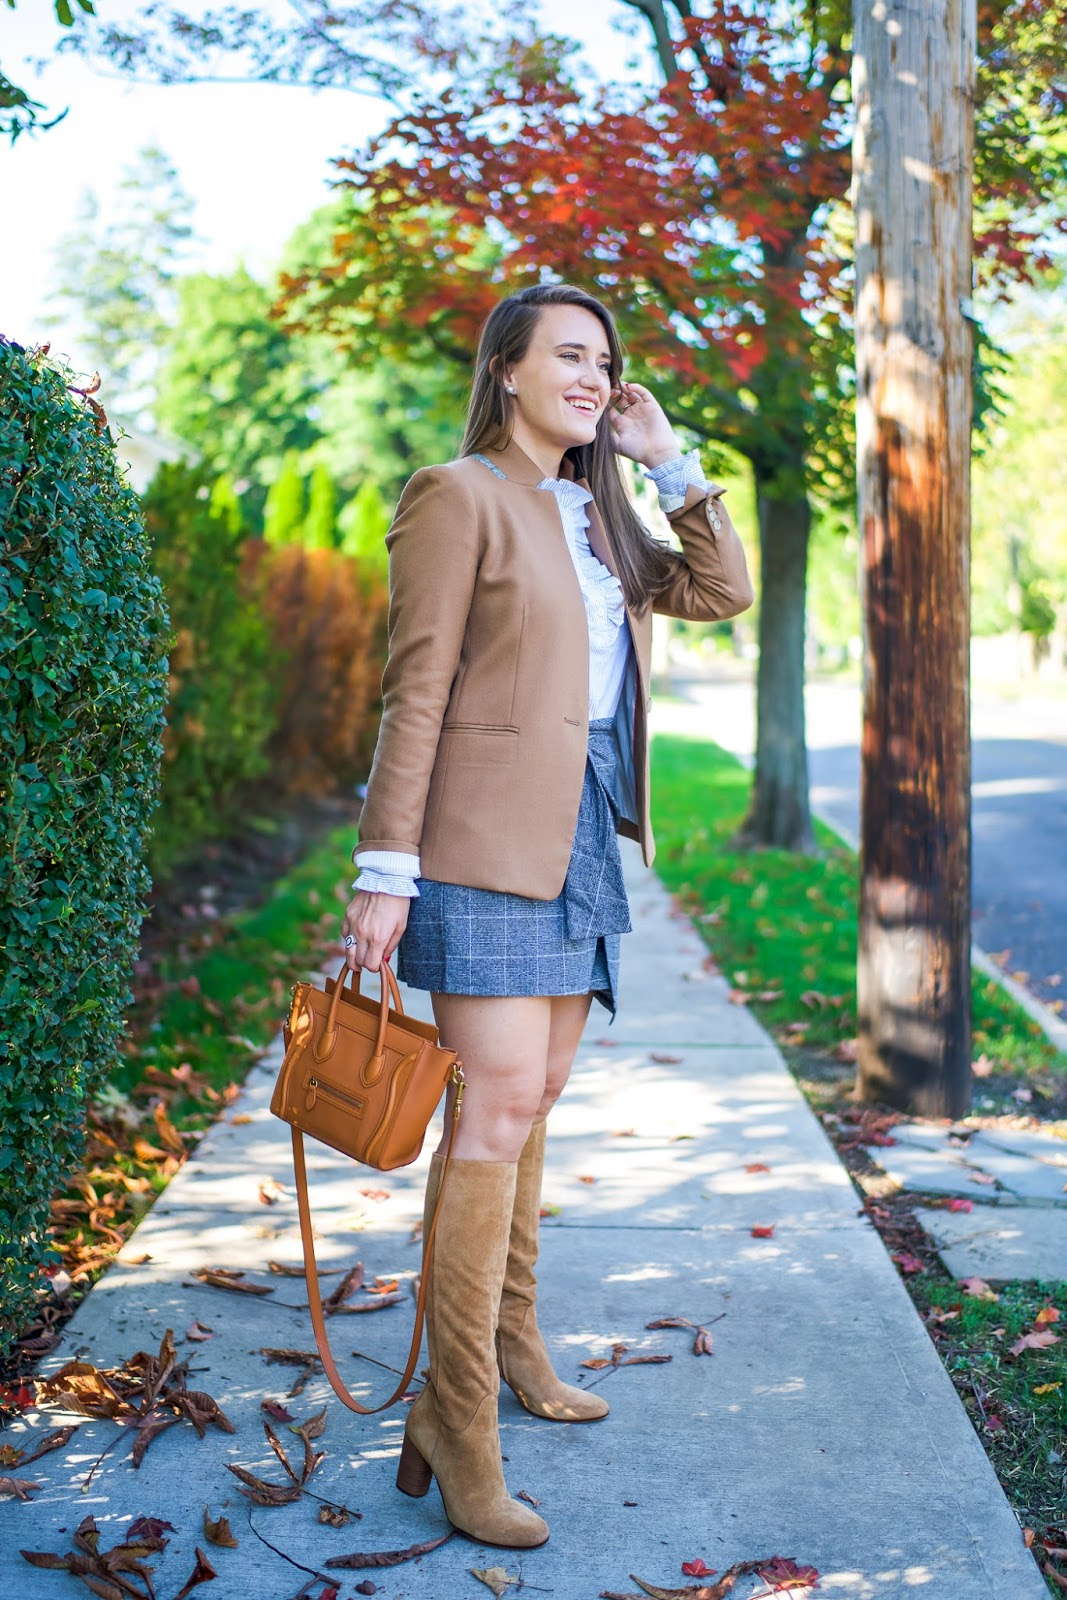 b50933a8949cf A New Plaid Skirt for Fall   Covering the Bases   Bloglovin'